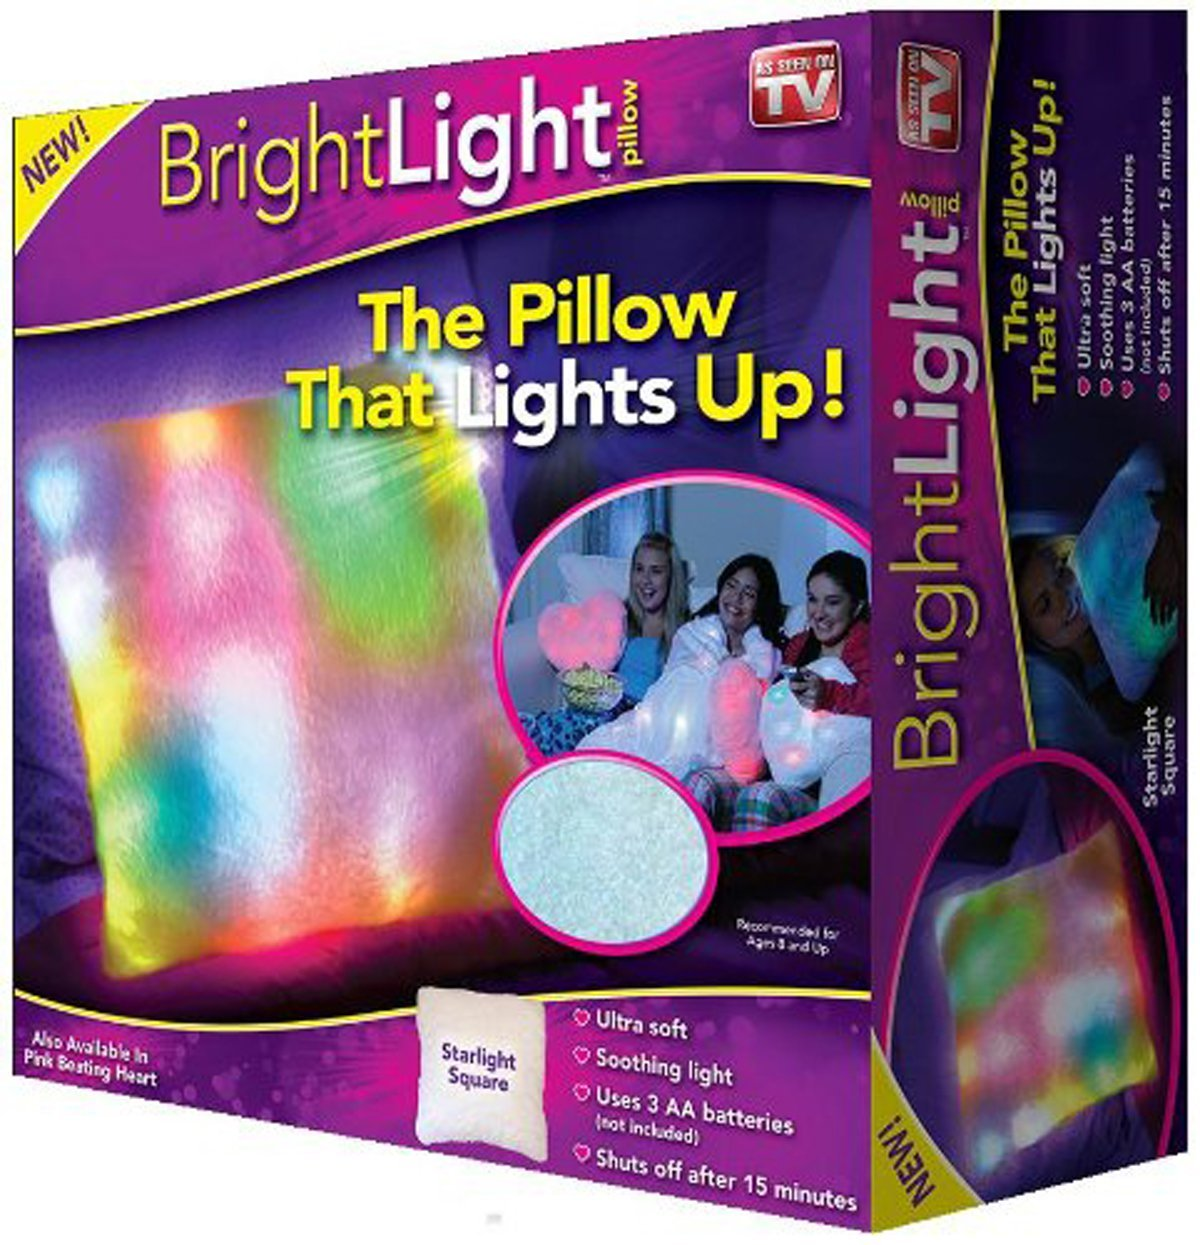 Bright light pillow light up your kid 39 s holiday pretty opinionated A bright home to give a family a taste of the good life